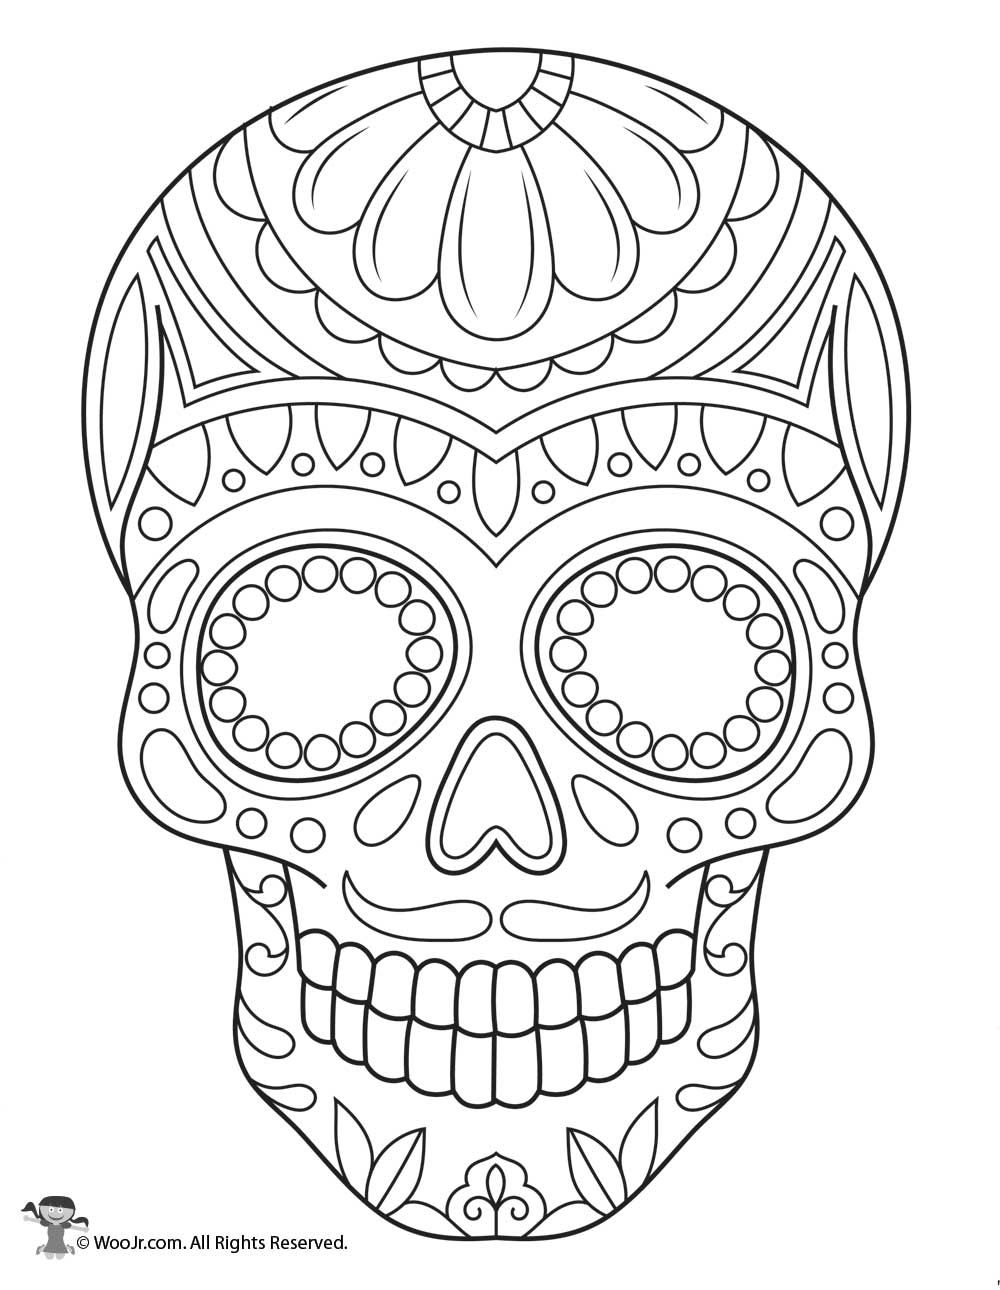 Sugar Skull Coloring Page | Woo! Jr. Kids Activities